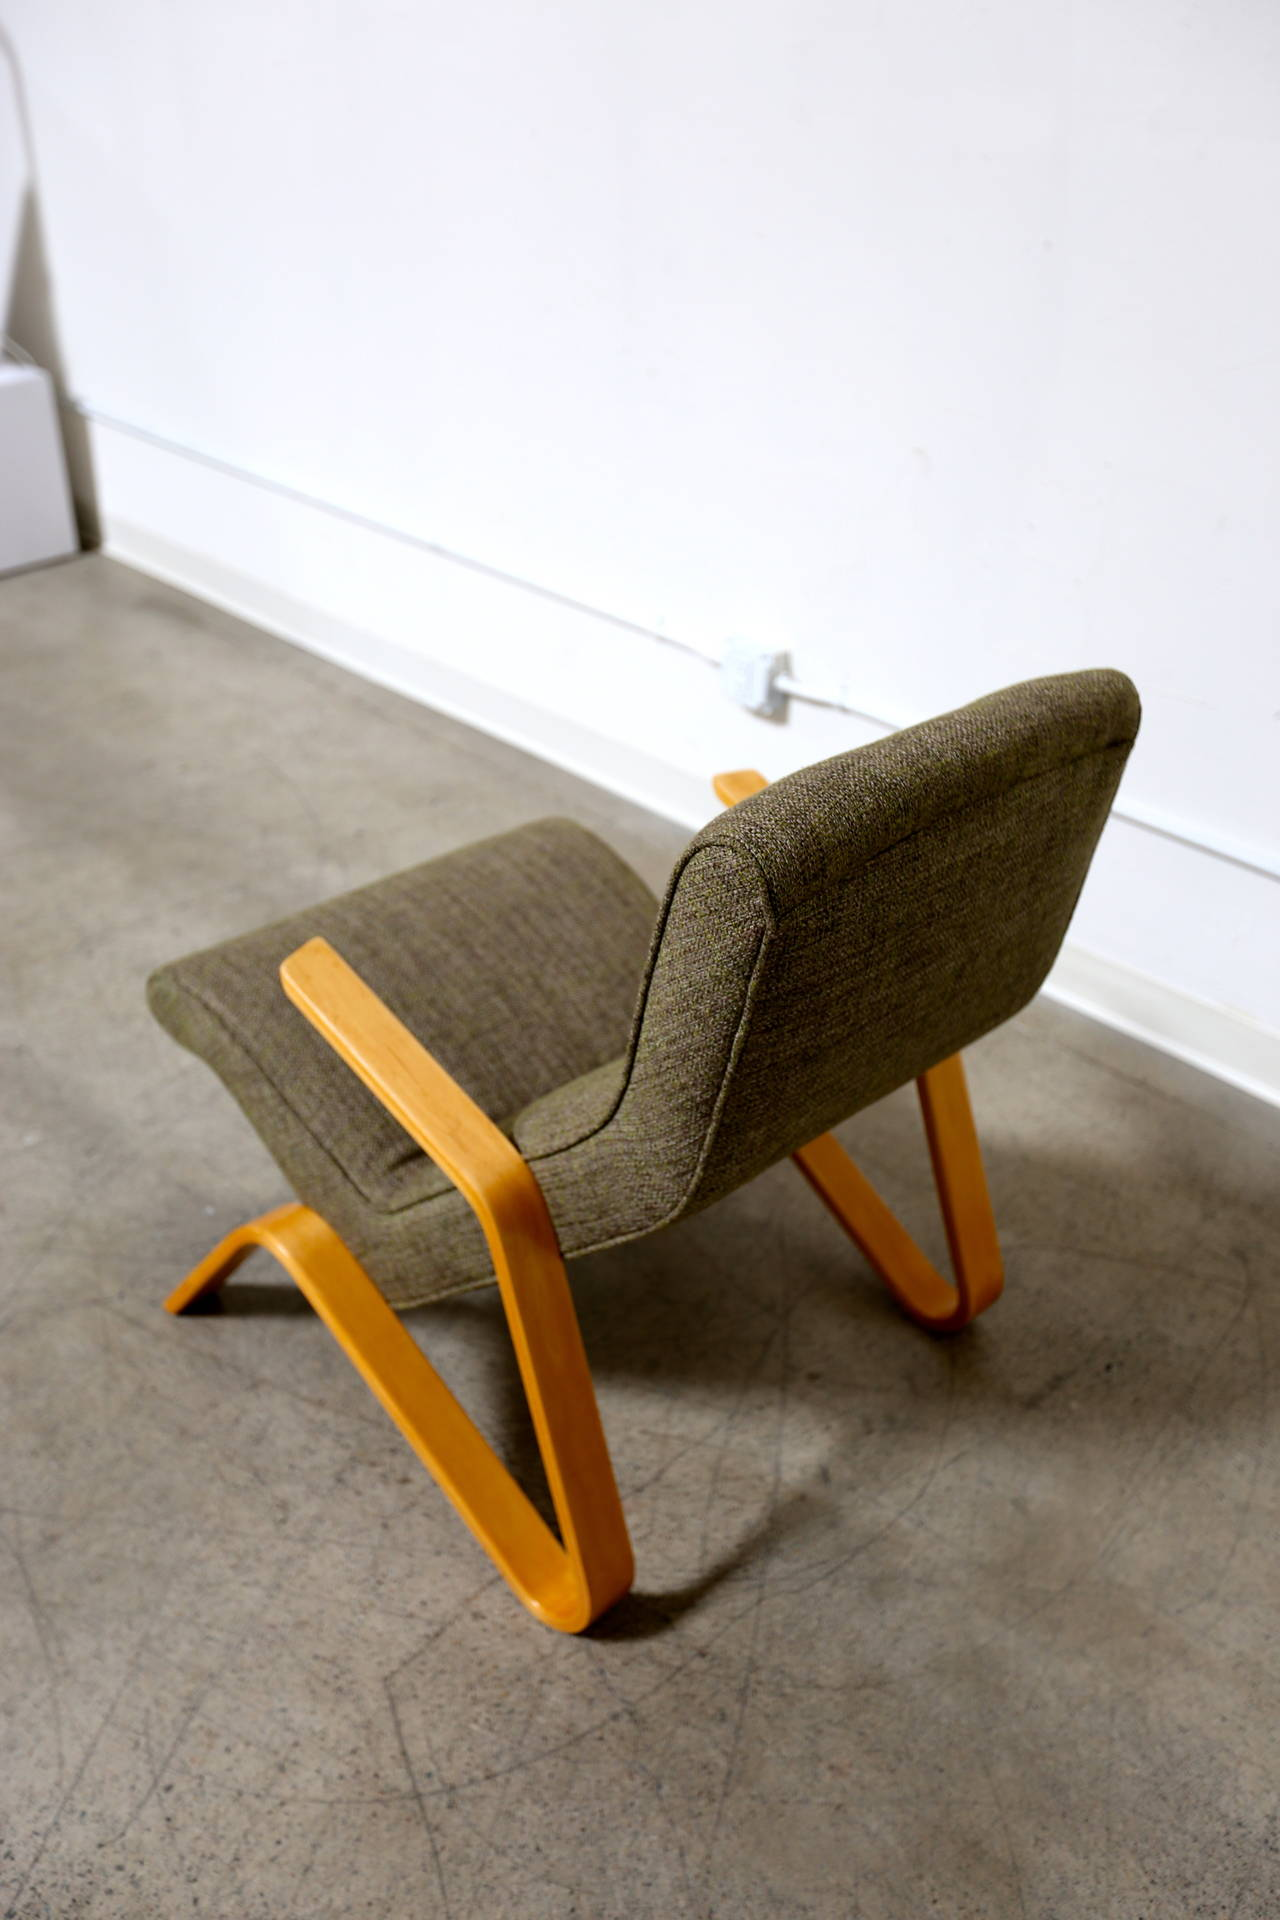 Eero Saarinen Grasshopper Chair for Knoll.